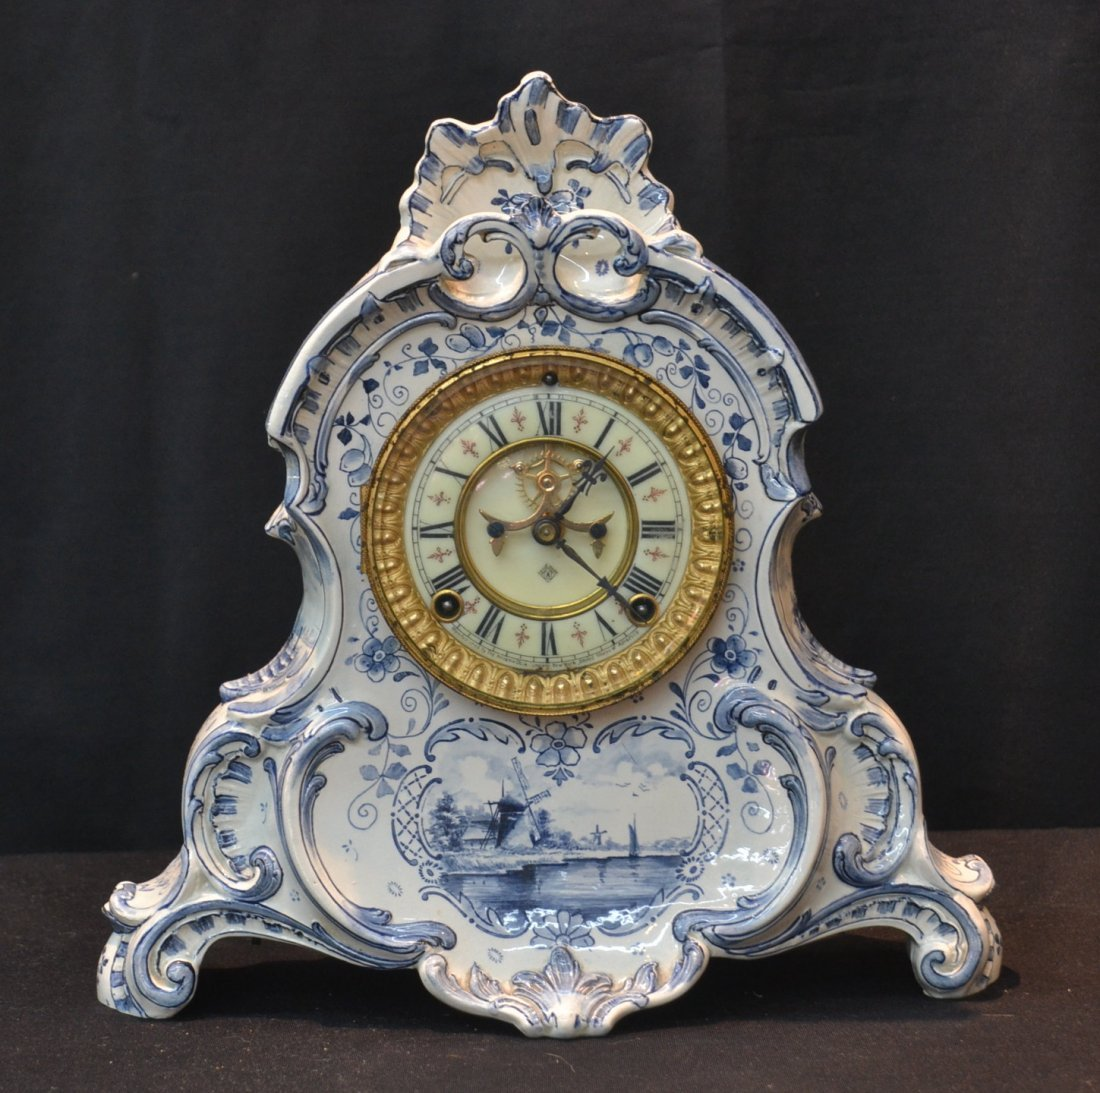 ANSONIA DELFT PORCELAIN CLOCK WITH OPEN